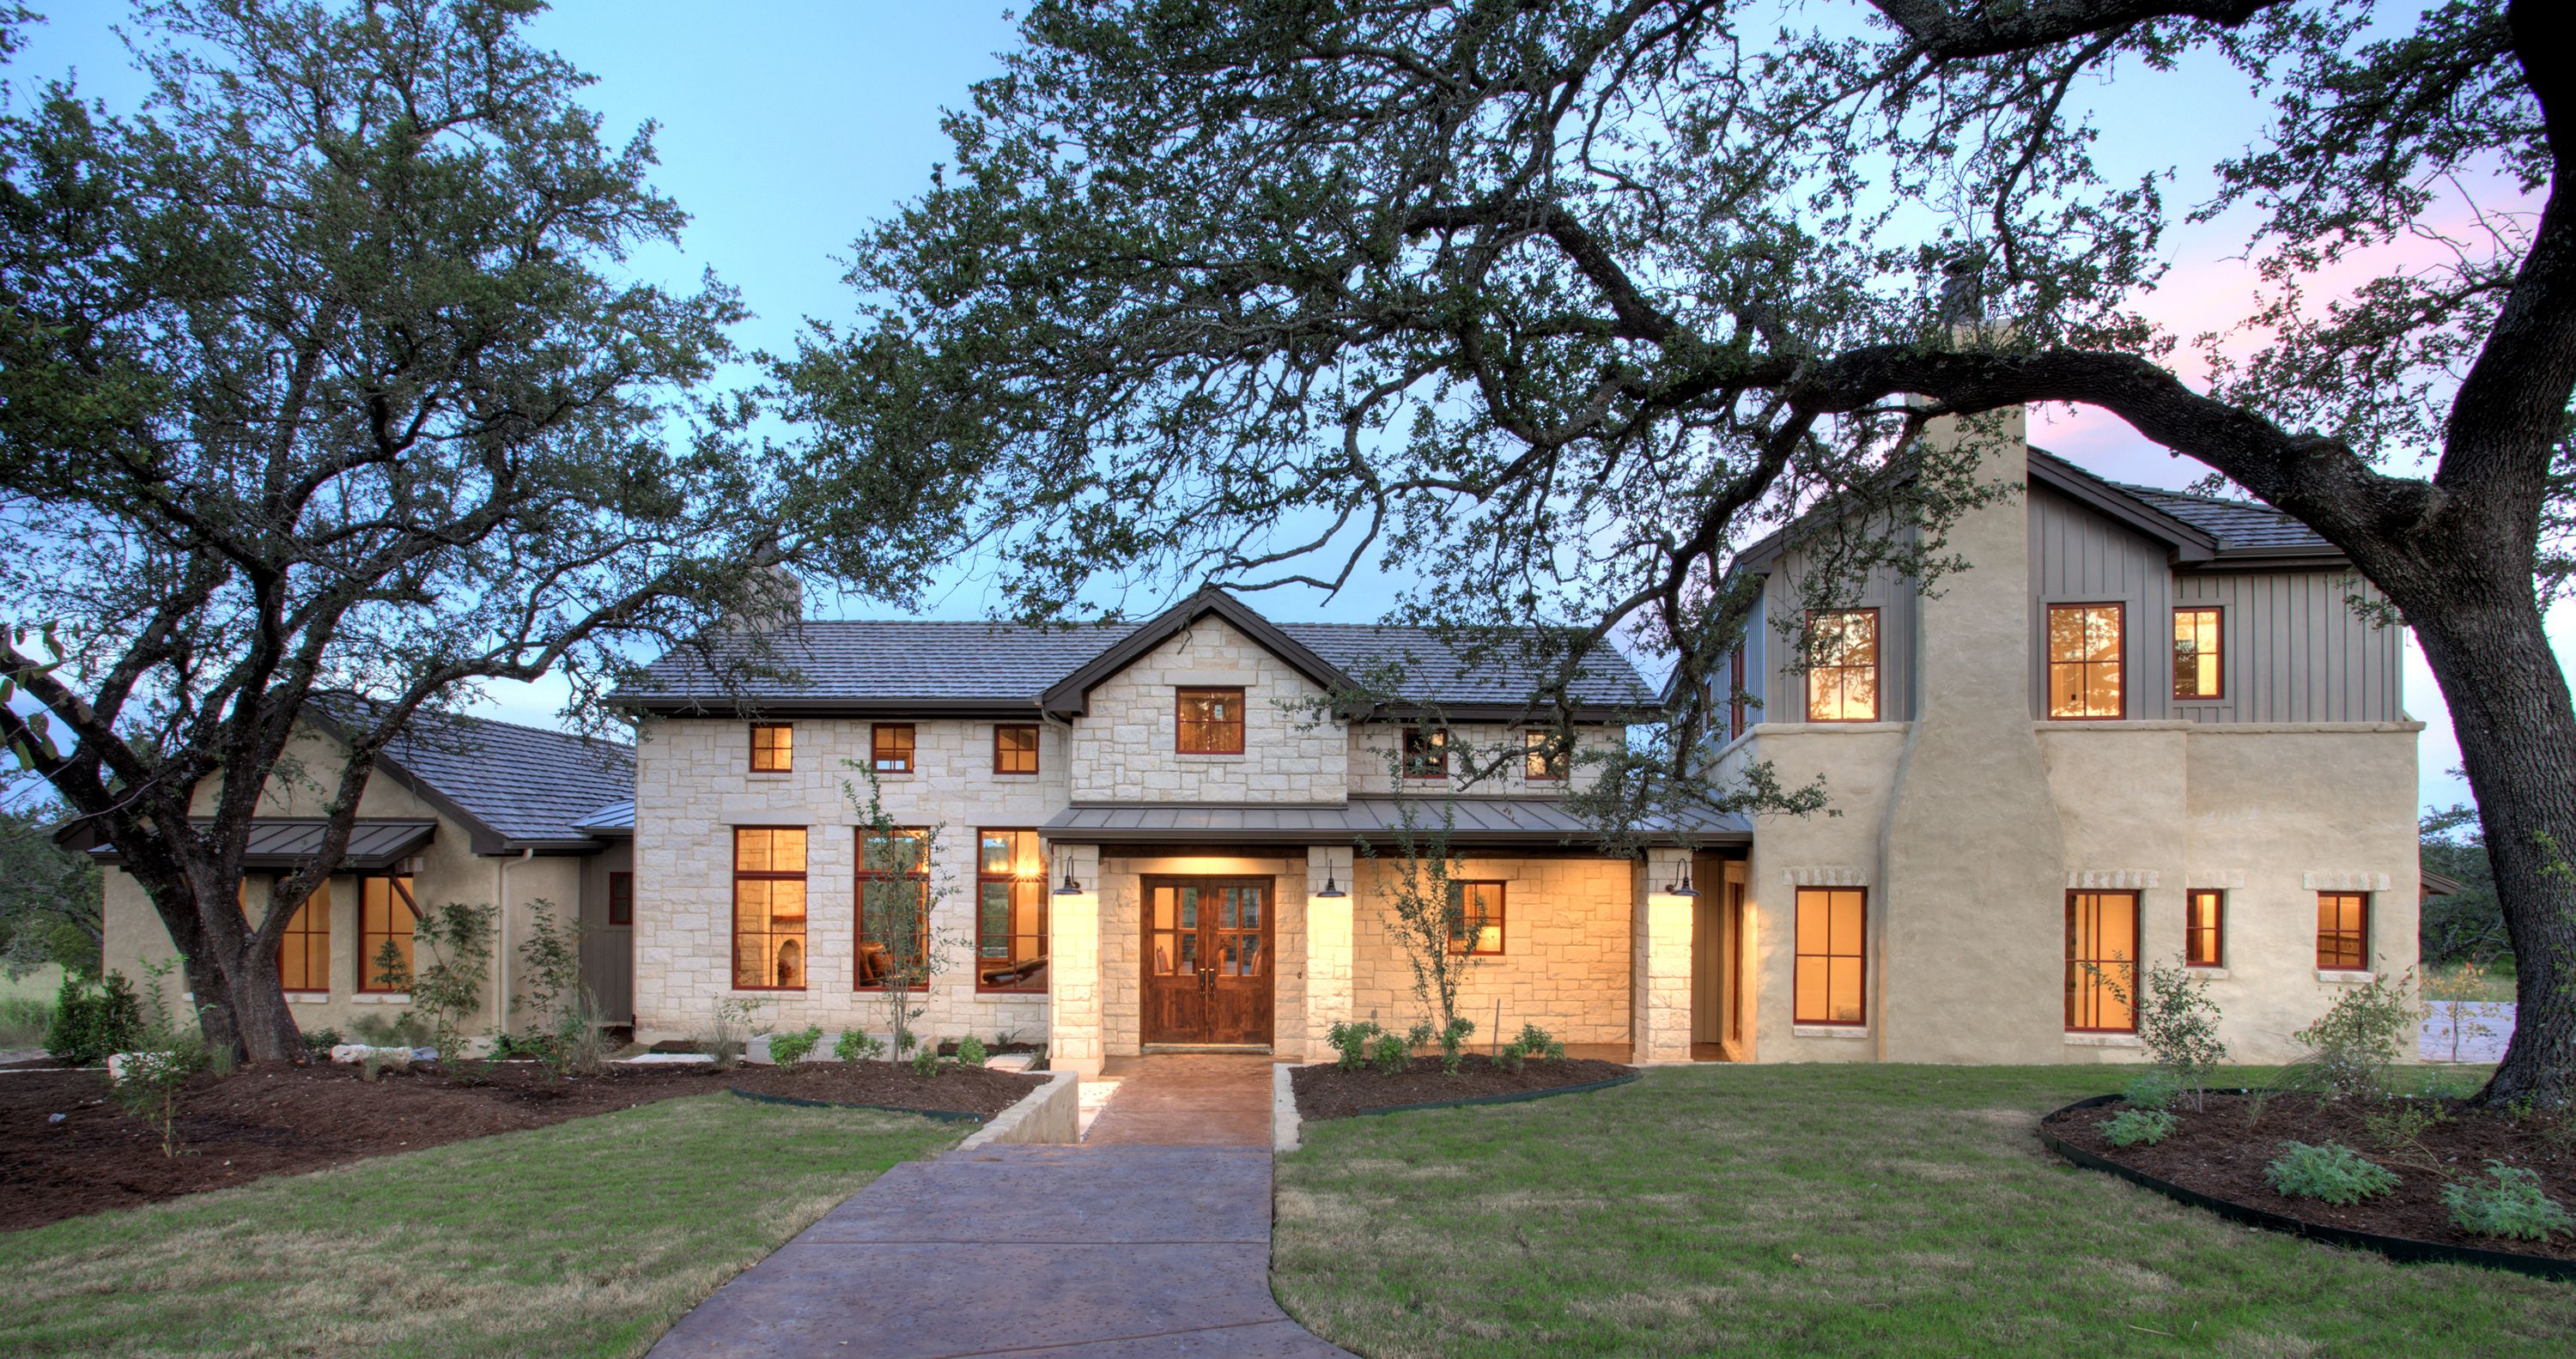 Texas hill country architecture floor plans joy studio for Hill country ranch home plans